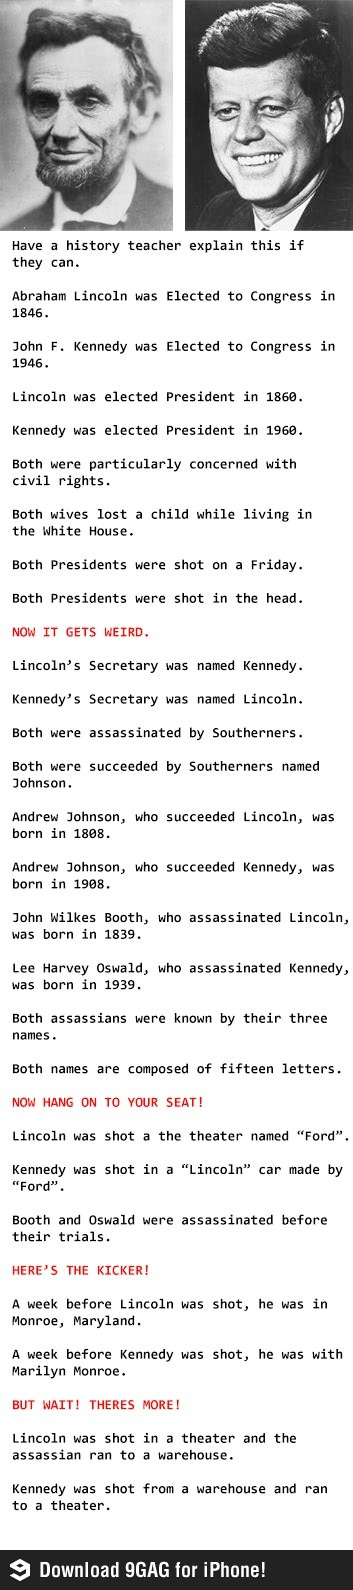 A. Lincoln and J. Kennedy history that has spooky simularities.